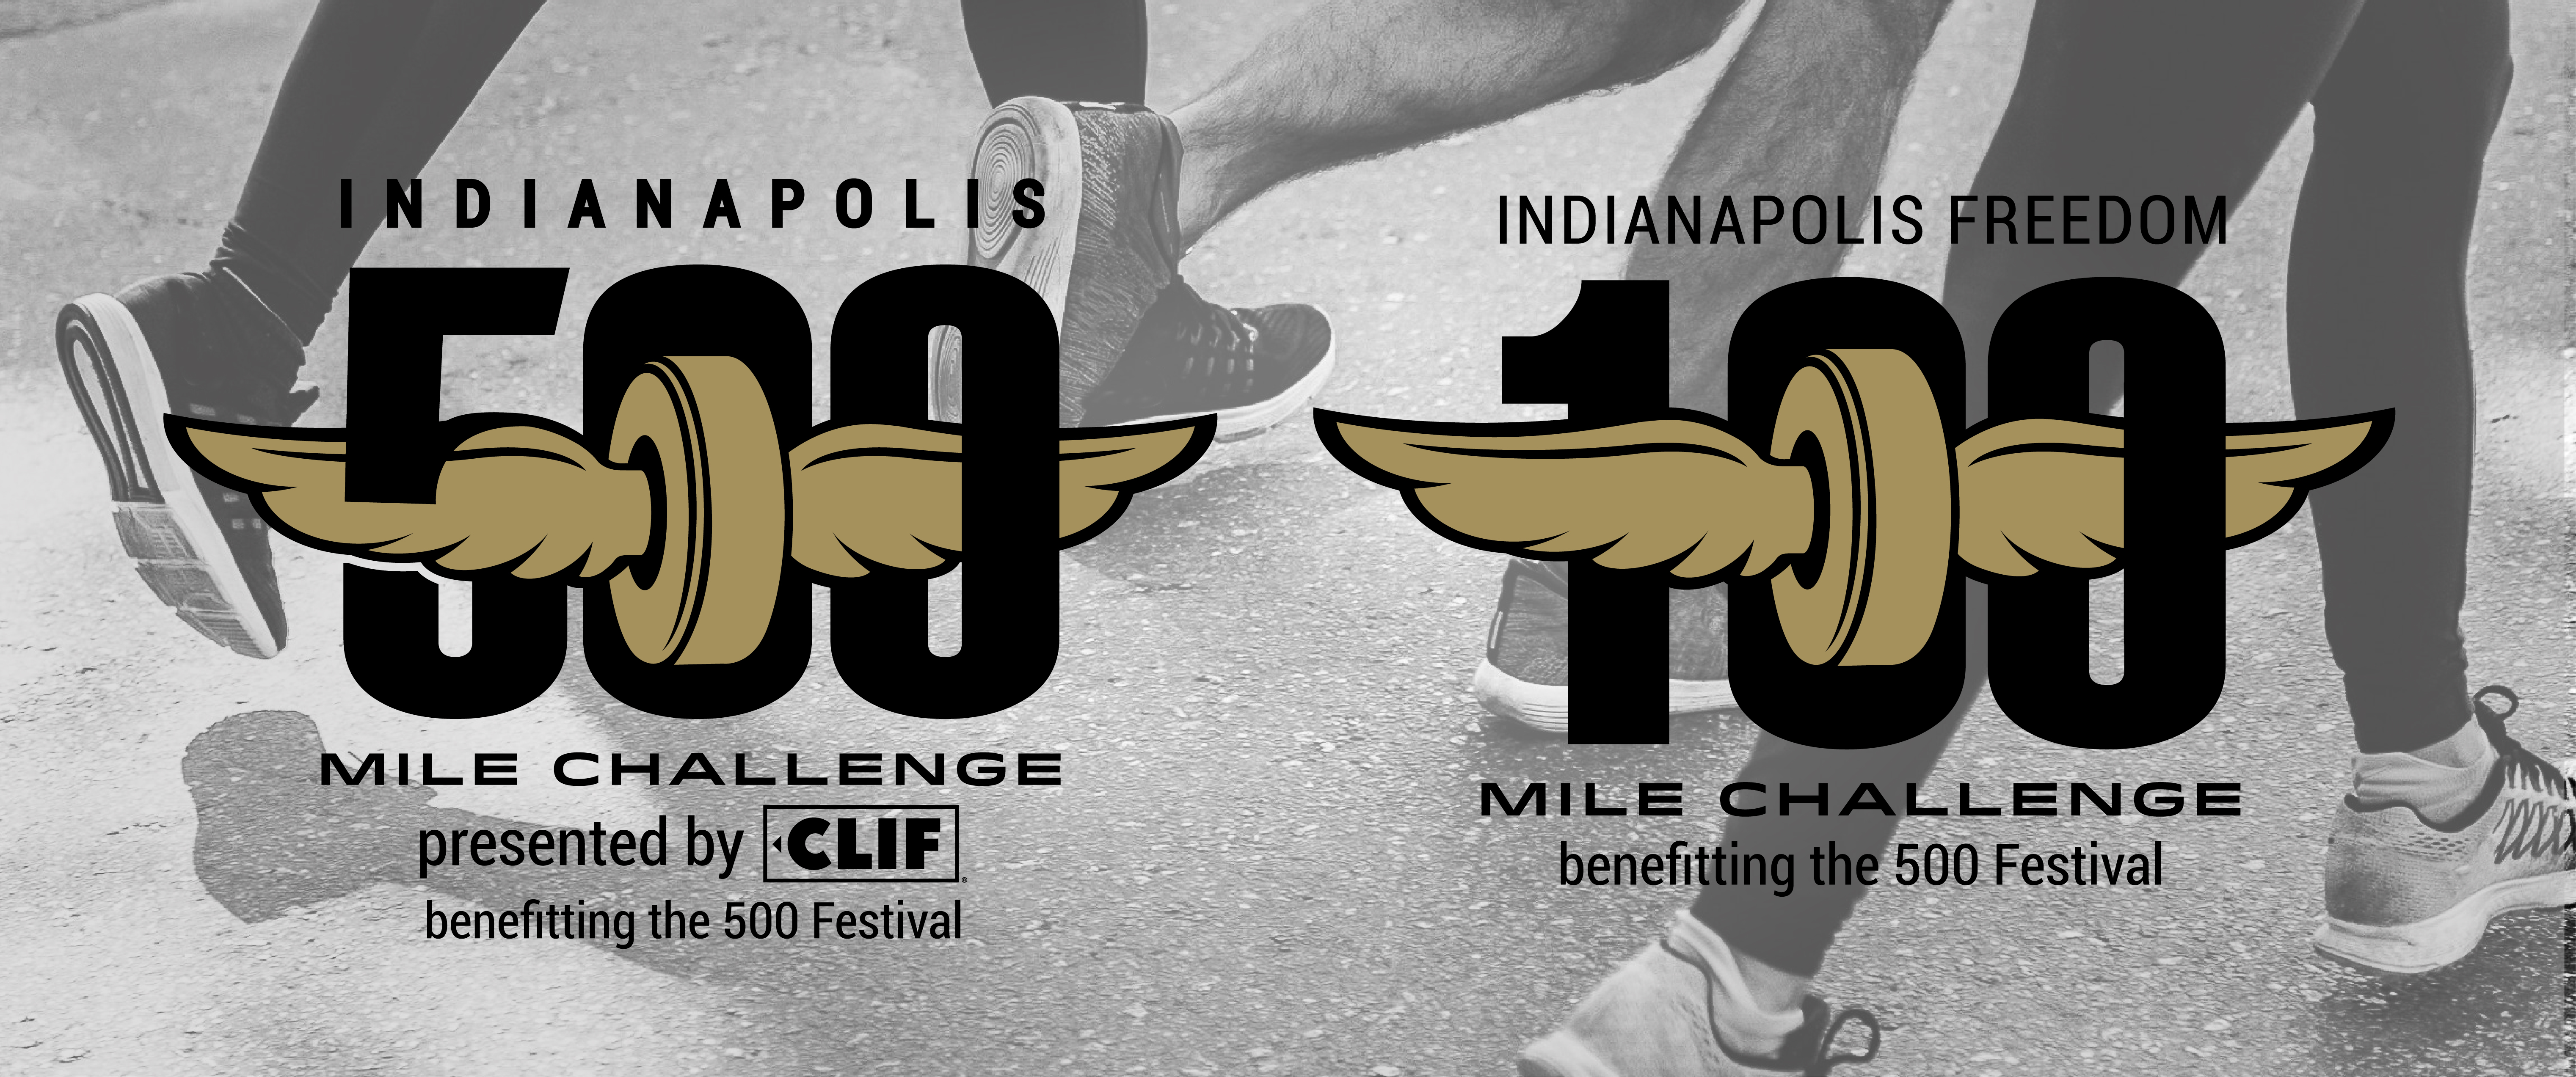 Indianapolis 500 Mile Challenge, presented by Clif Bar, benefitting the 500 Festival